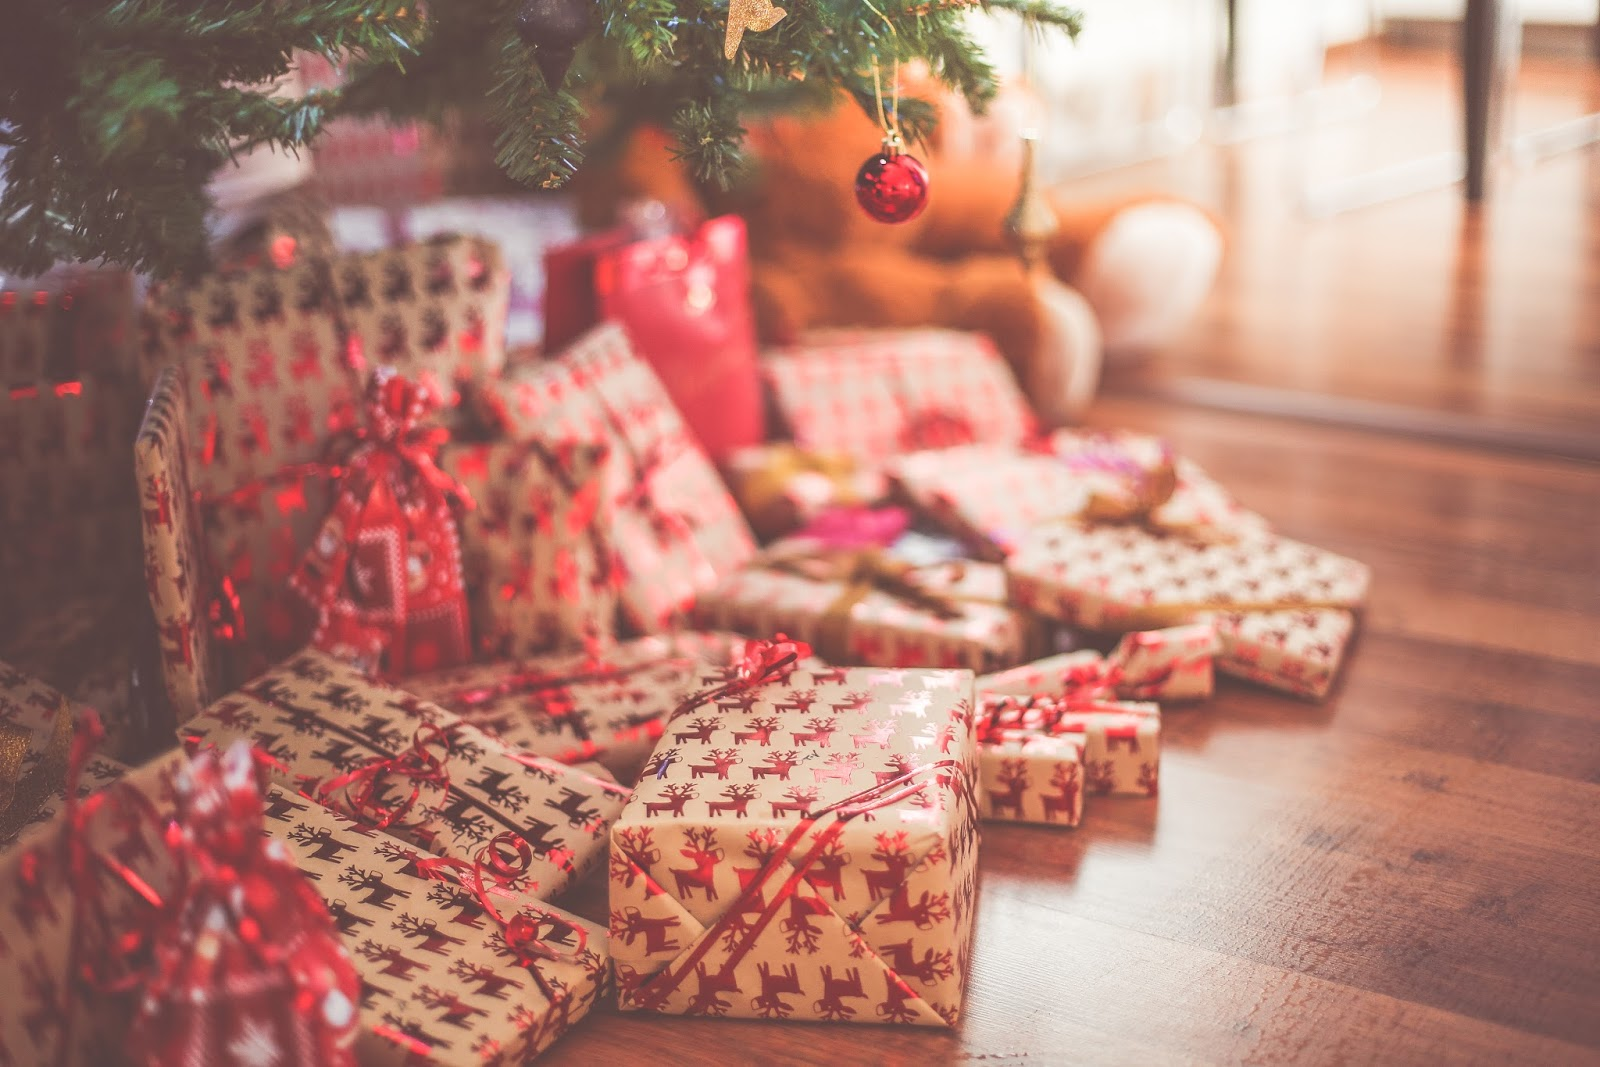 25 Reasons Why I Love Christmas